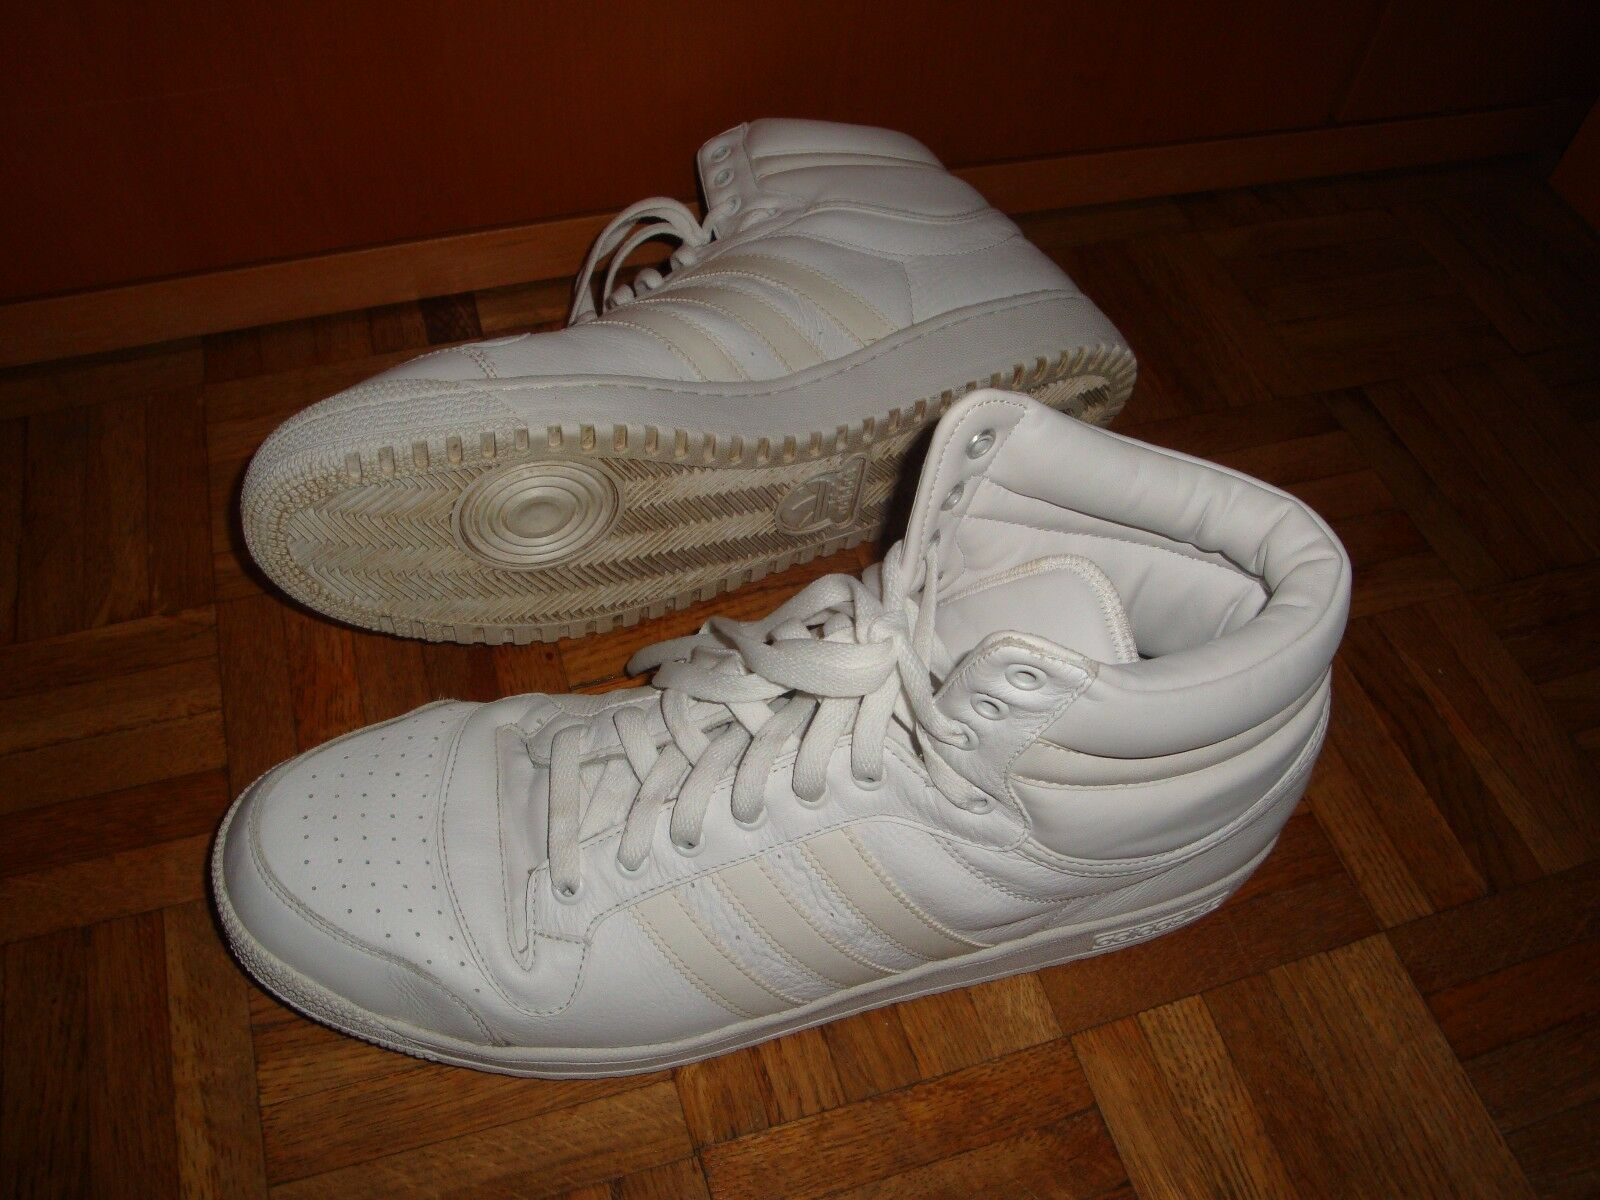 Adidas Top Ten High taille / Hi Used -  Zapatillas  taille High 52 2/3 Occasion - US 17 / f41800